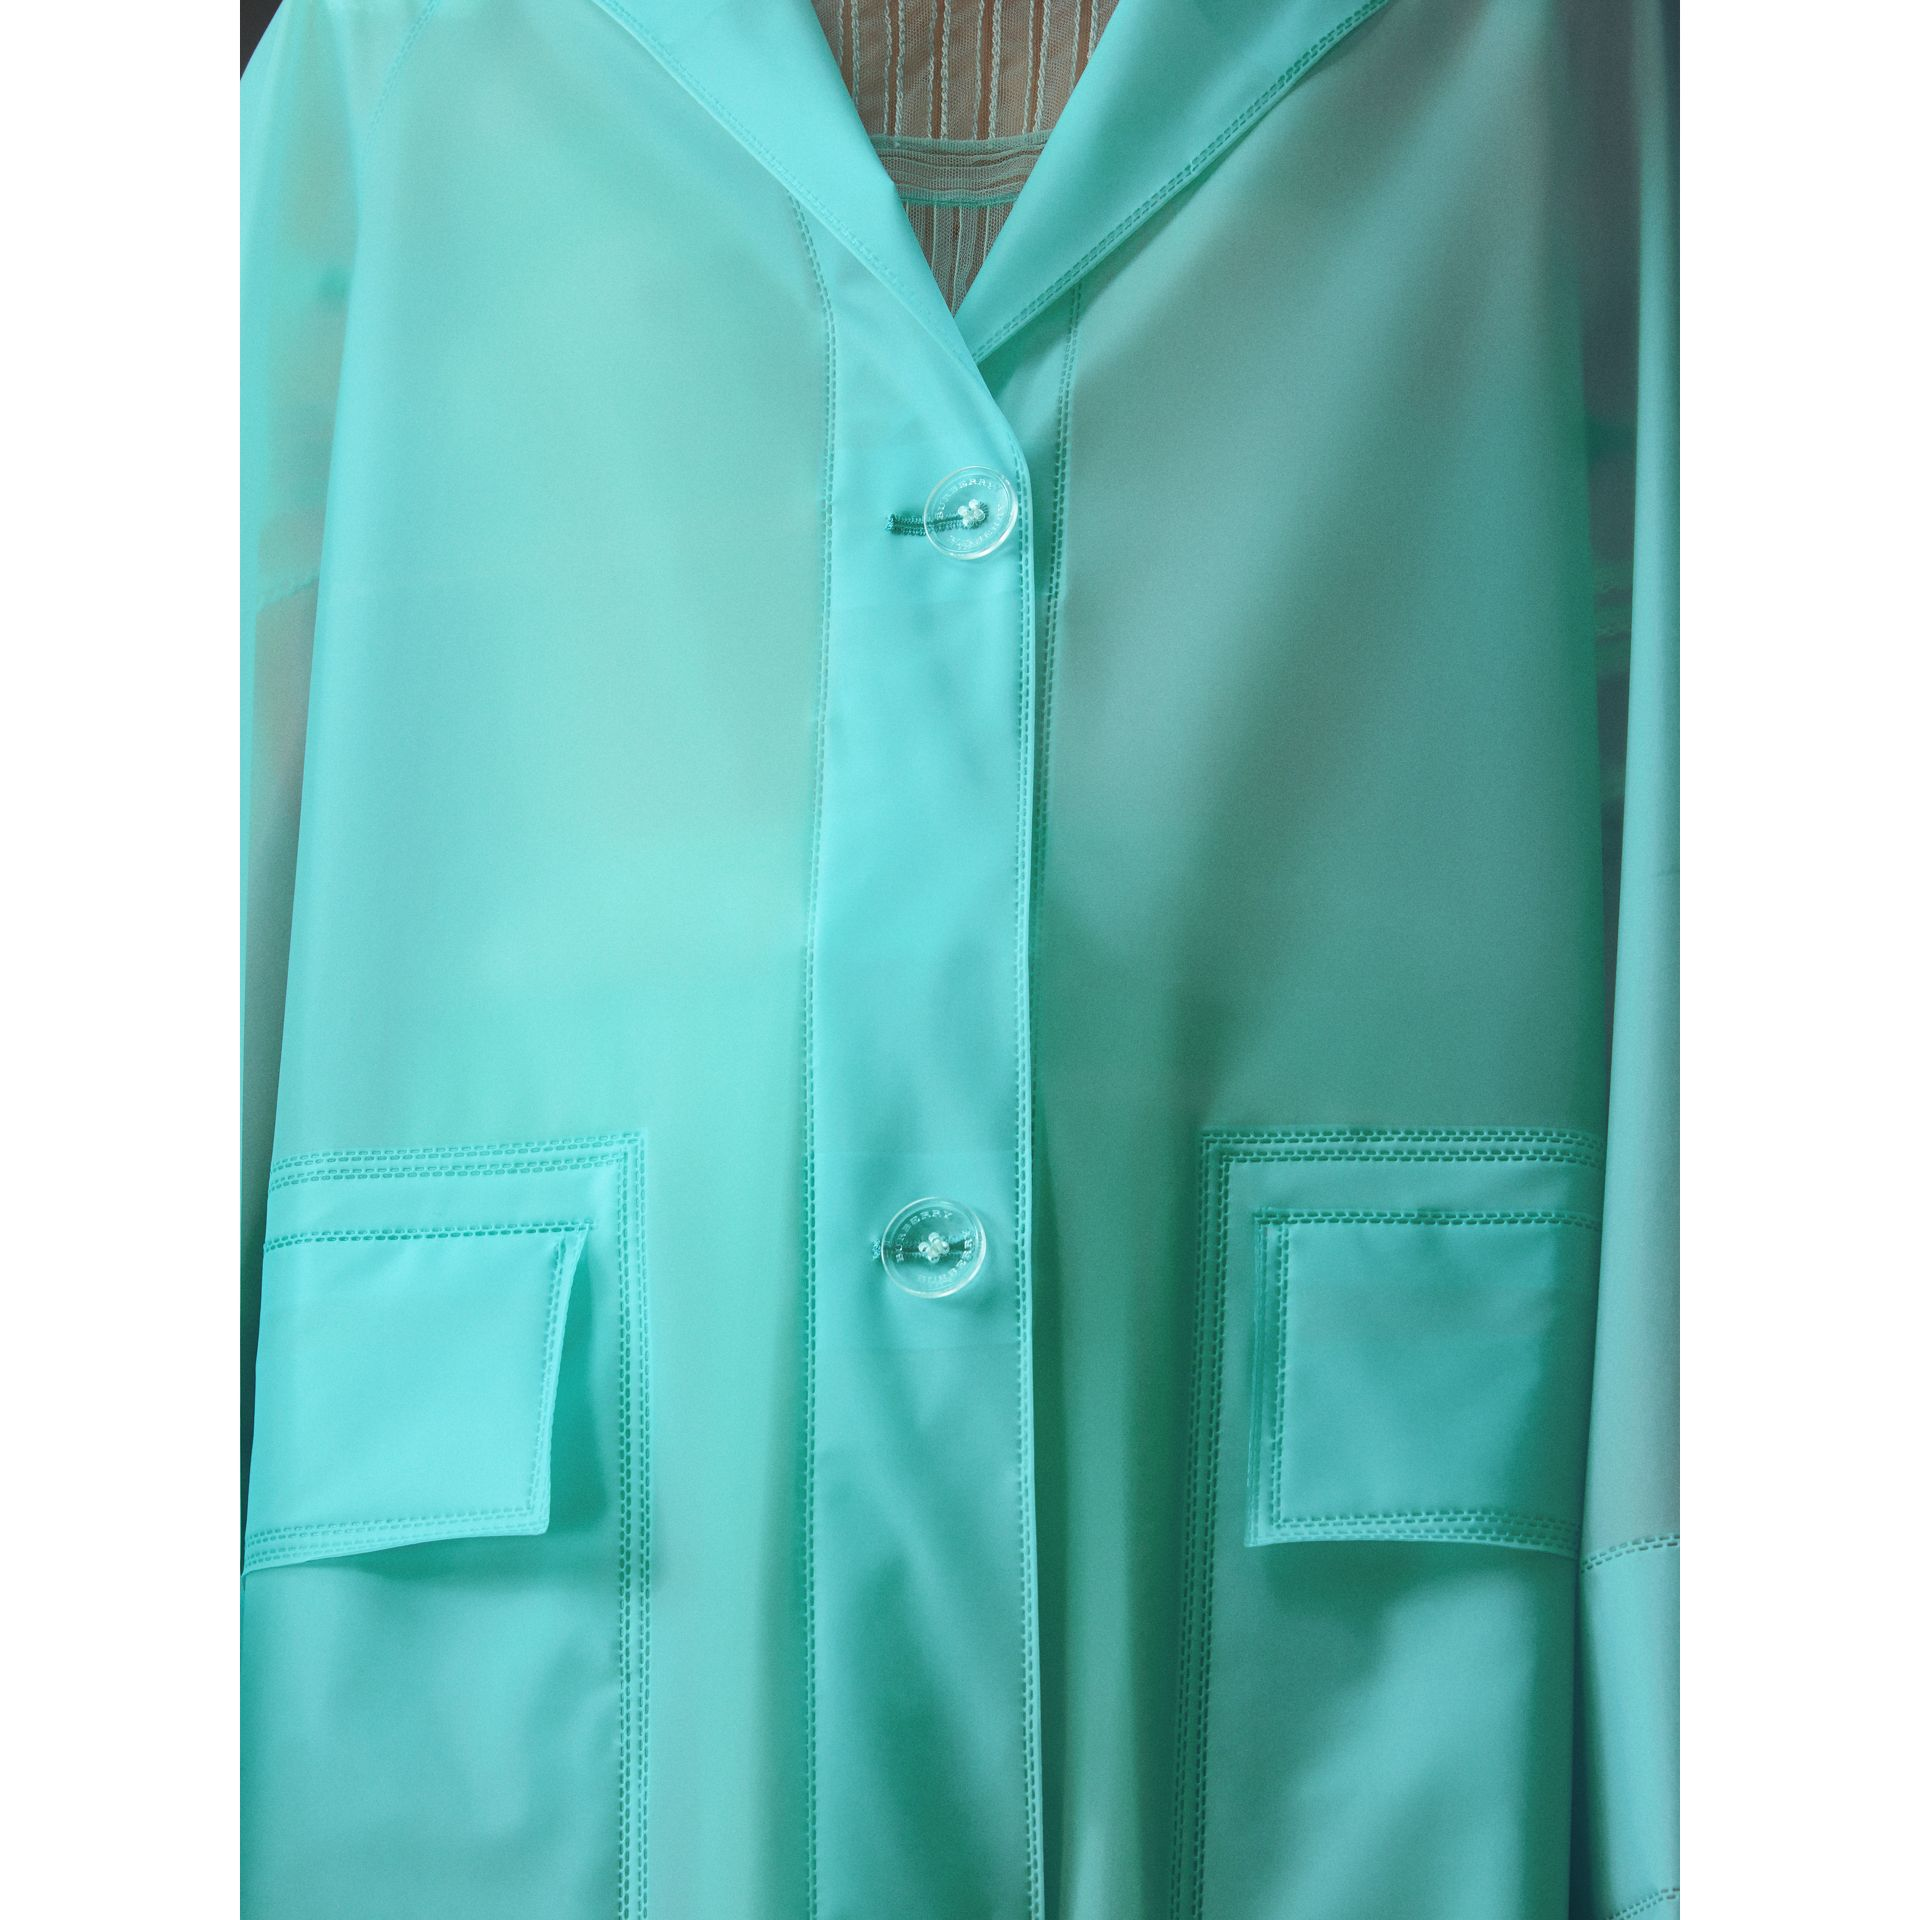 Soft-touch Plastic Car Coat in Turquoise - Women | Burberry - gallery image 2